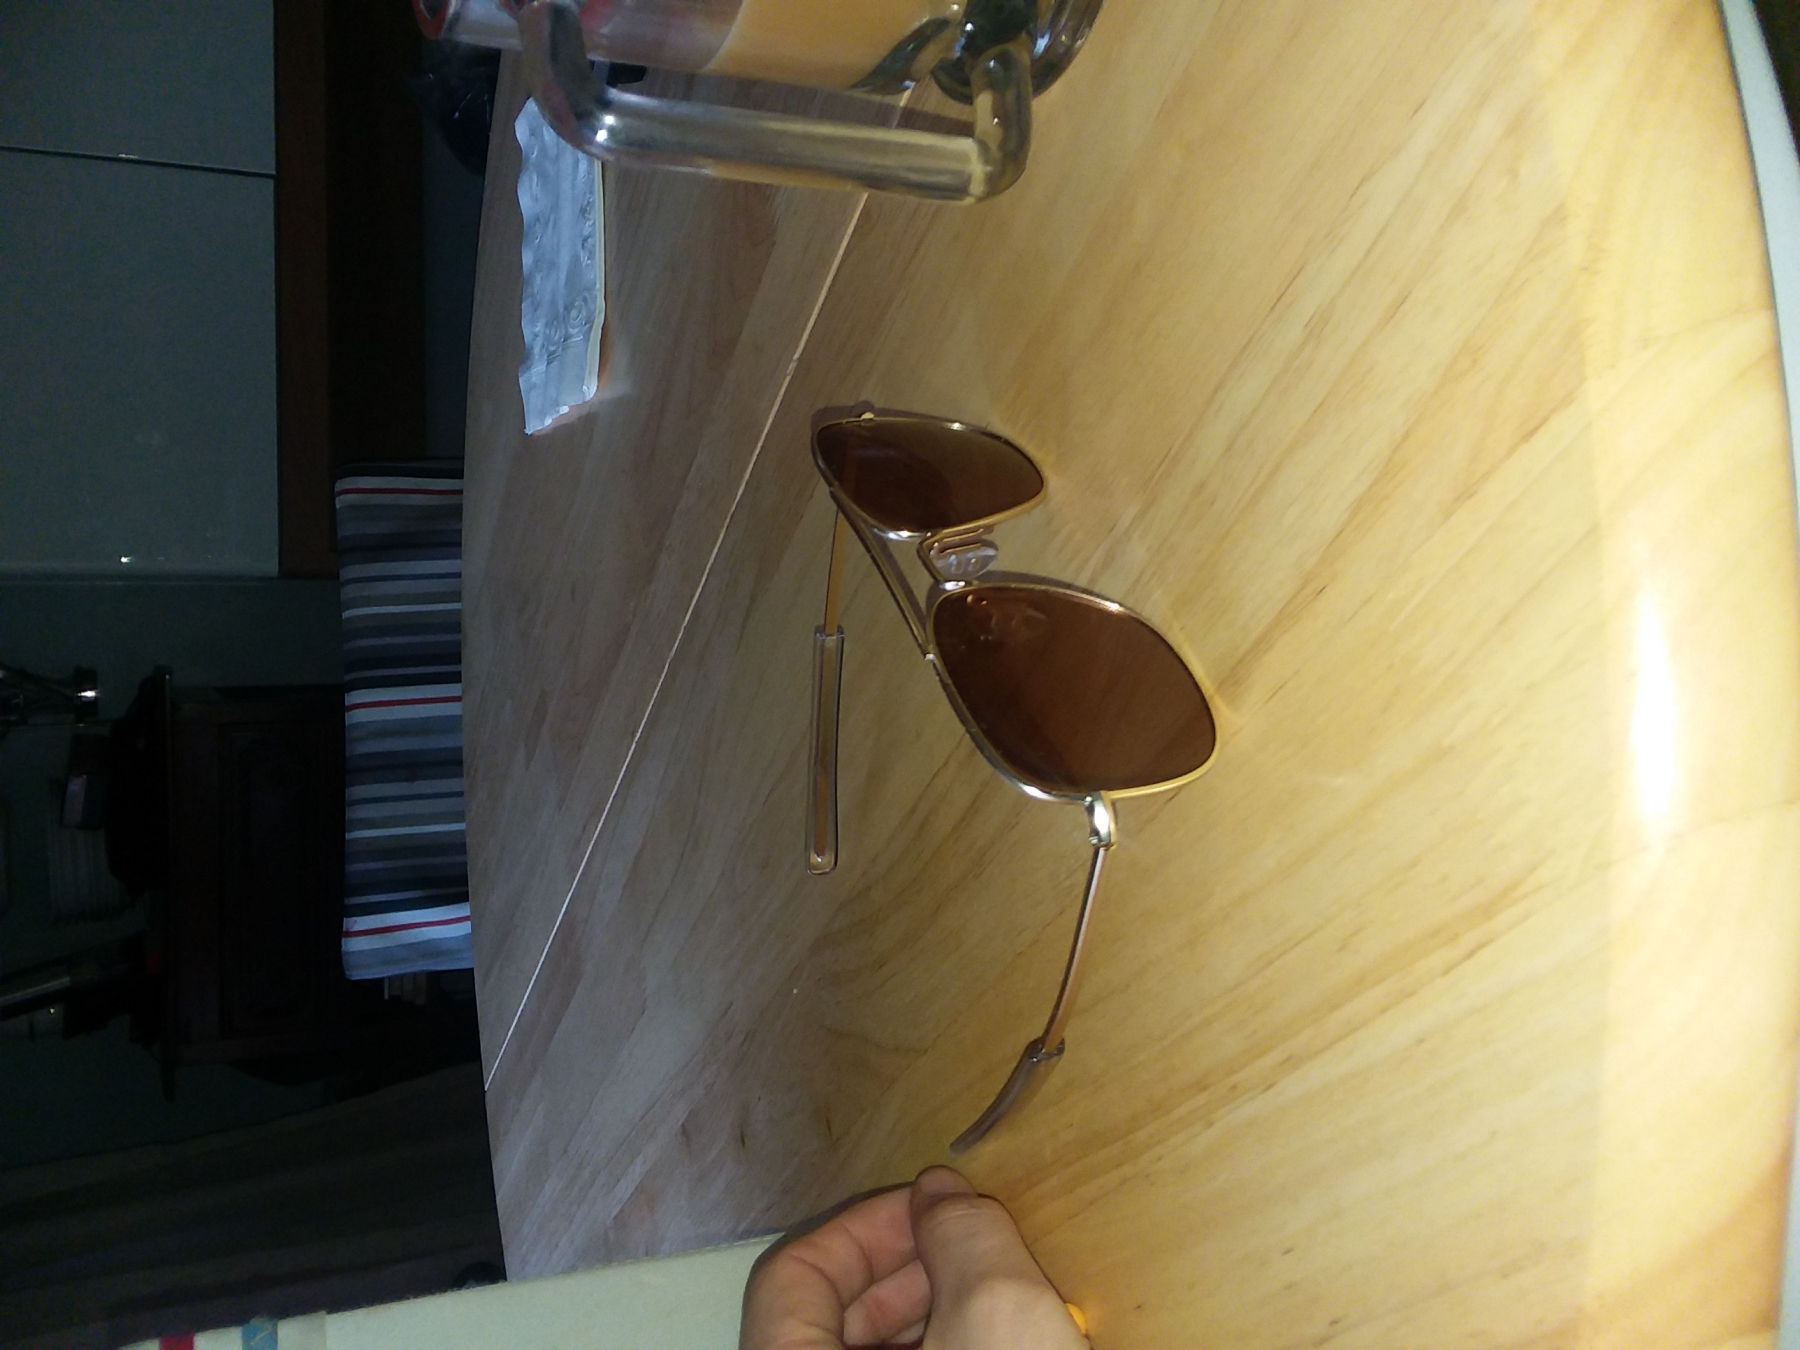 Retro aviator sunglasses